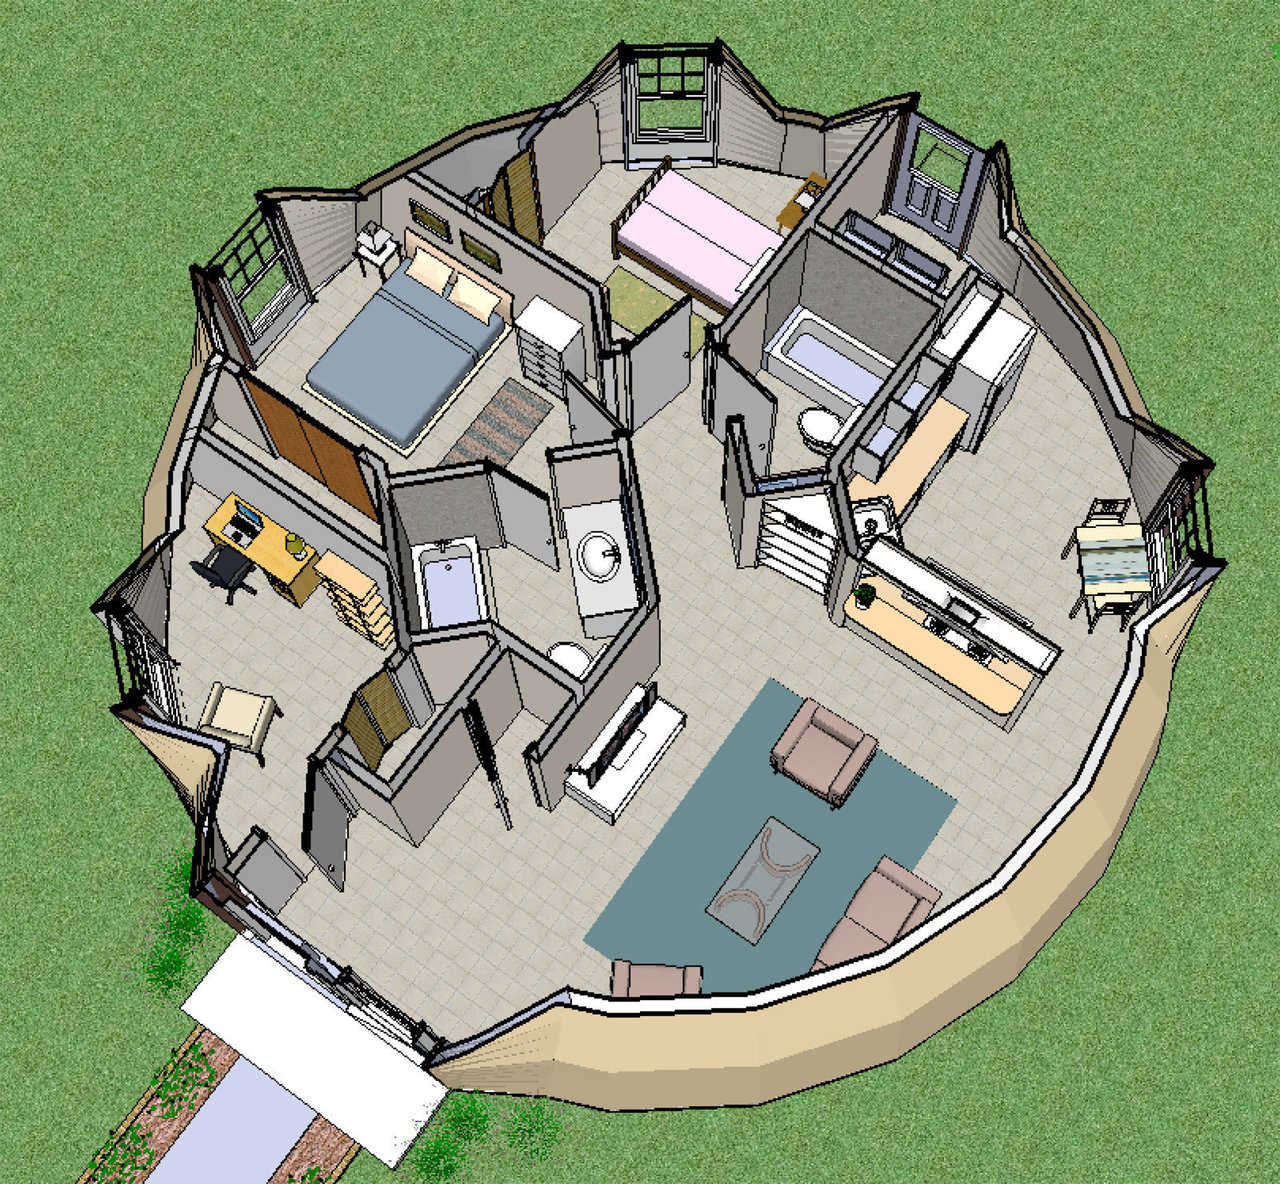 SketchUp: A New Planning Tool | Monolithic Dome Insute on christmas story house floor plan, gatsby house floor plan, barbie house floor plan, incredibles house floor plan, frodo baggins house floor plan,